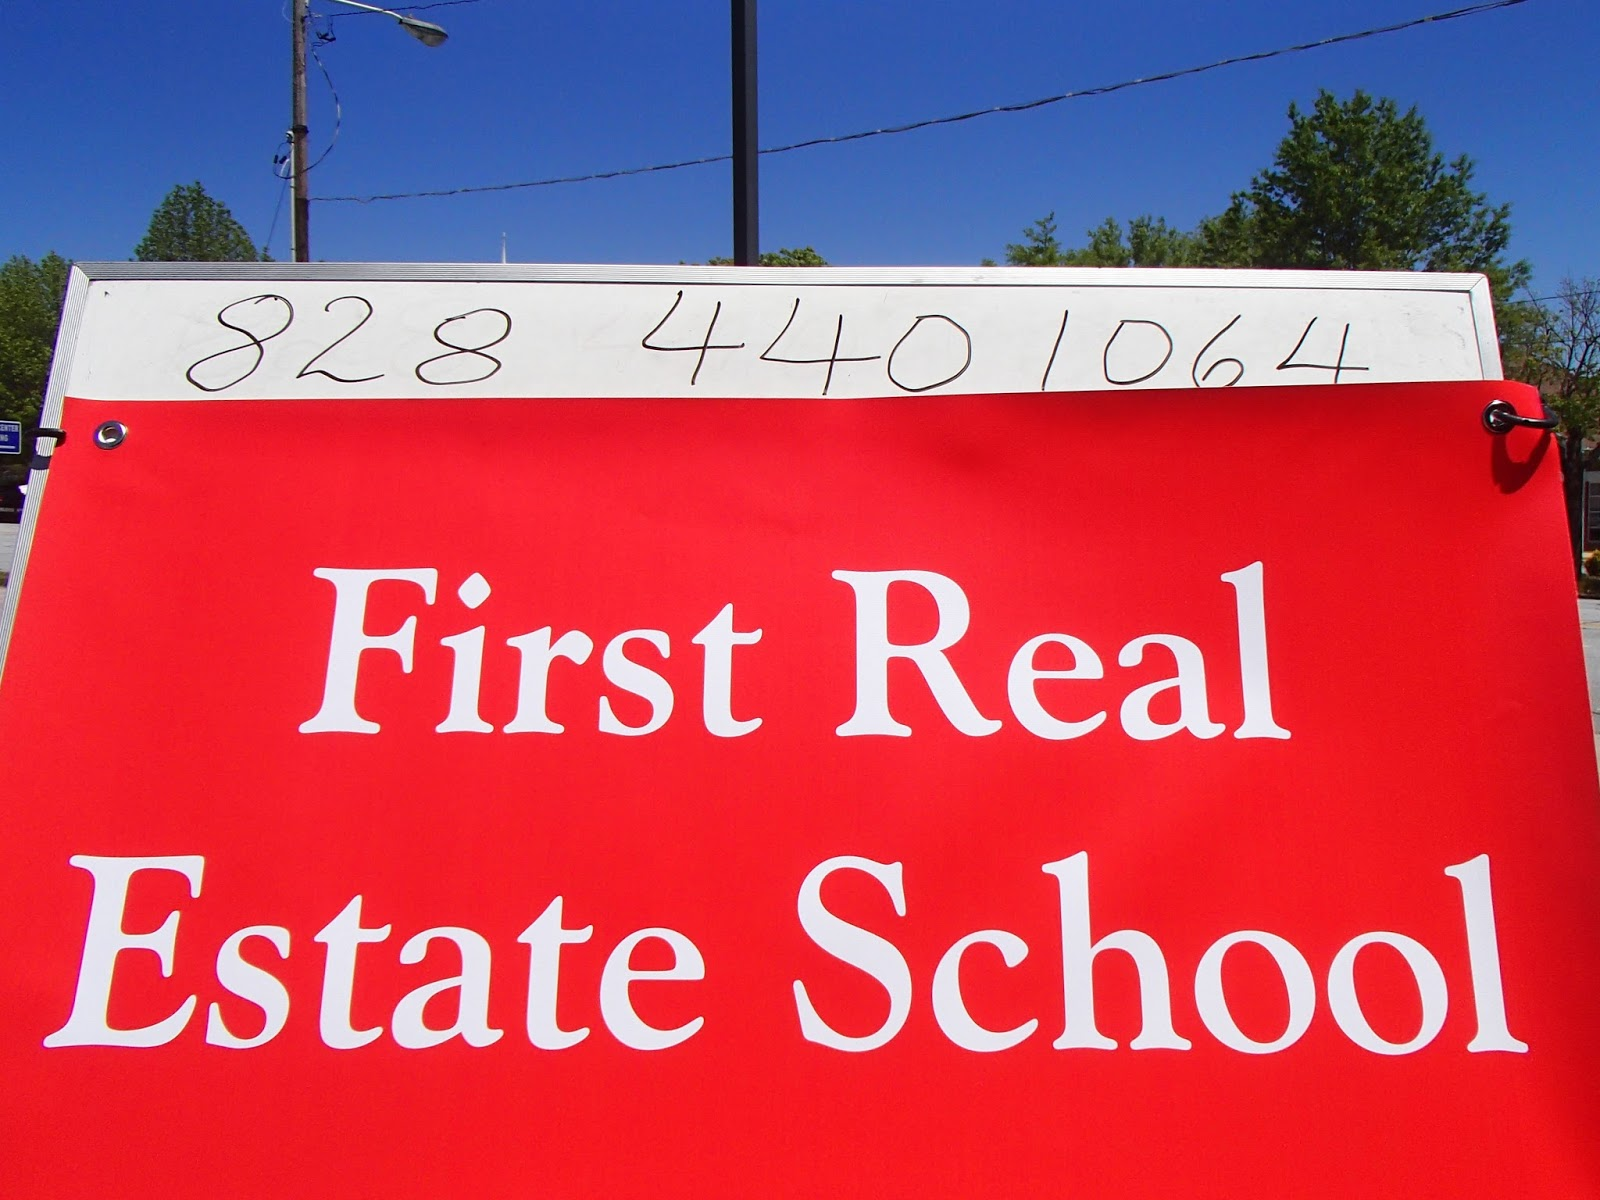 Ron Climer Mountain Messages The Best Real Estate School Near